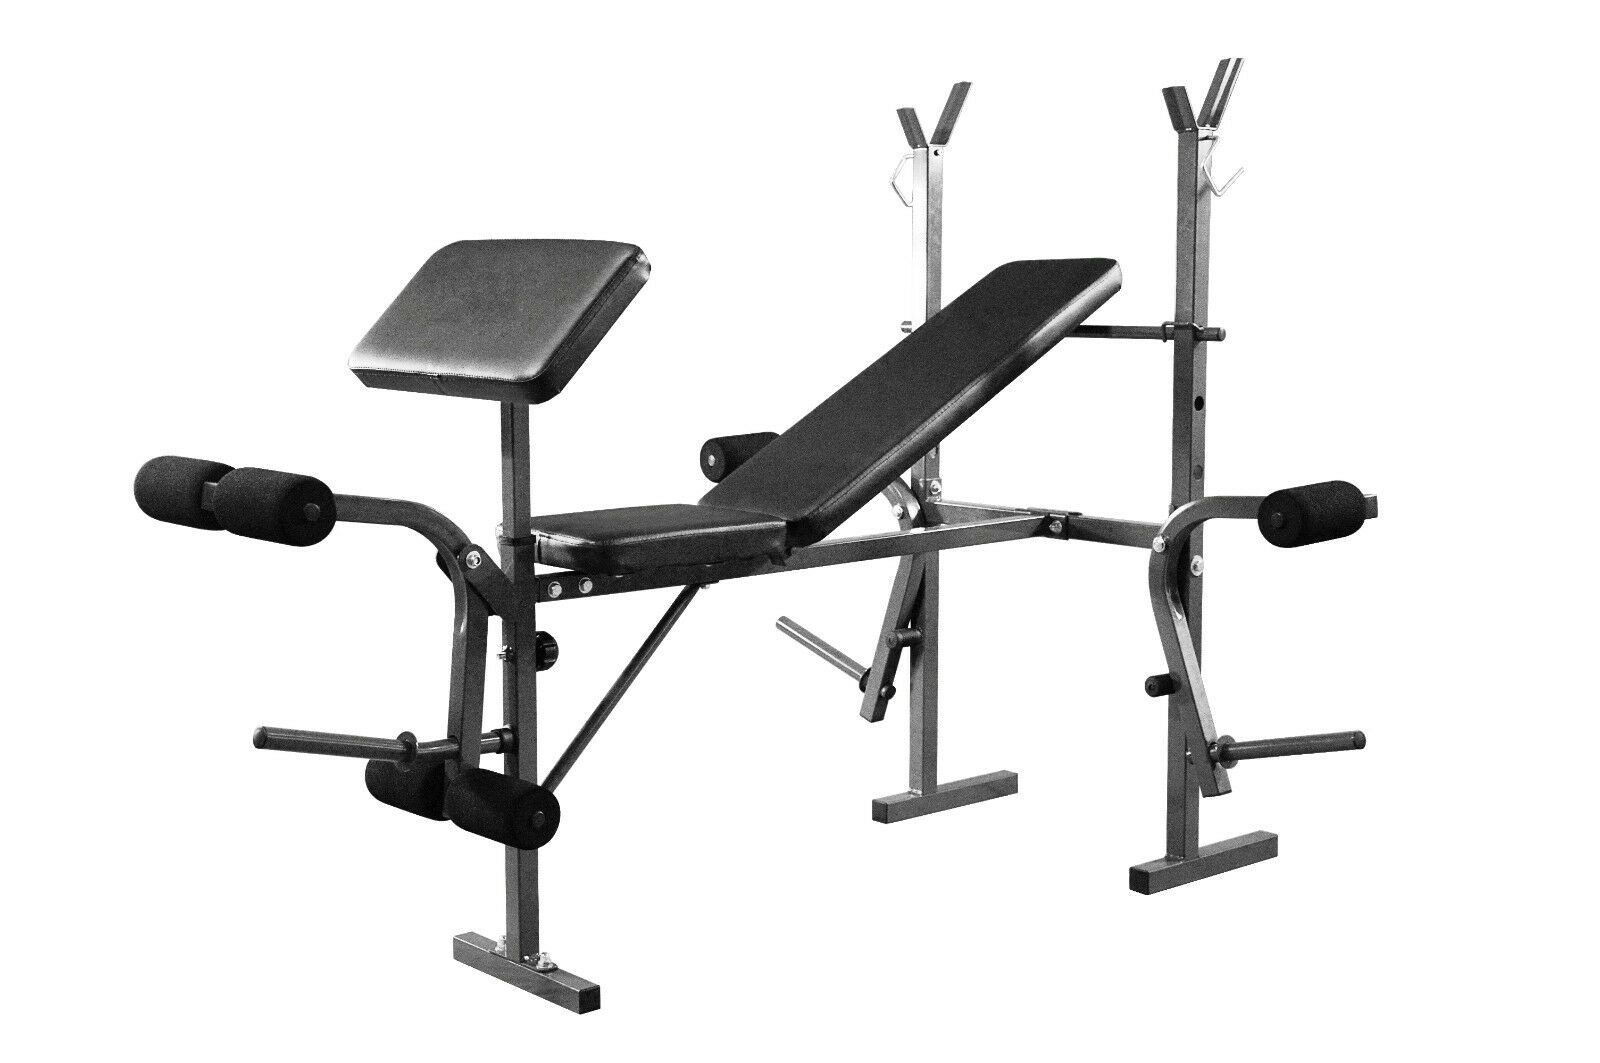 Weight Training Preacher Bench Leg & Chest Fly Workout Adjustable Training Bench